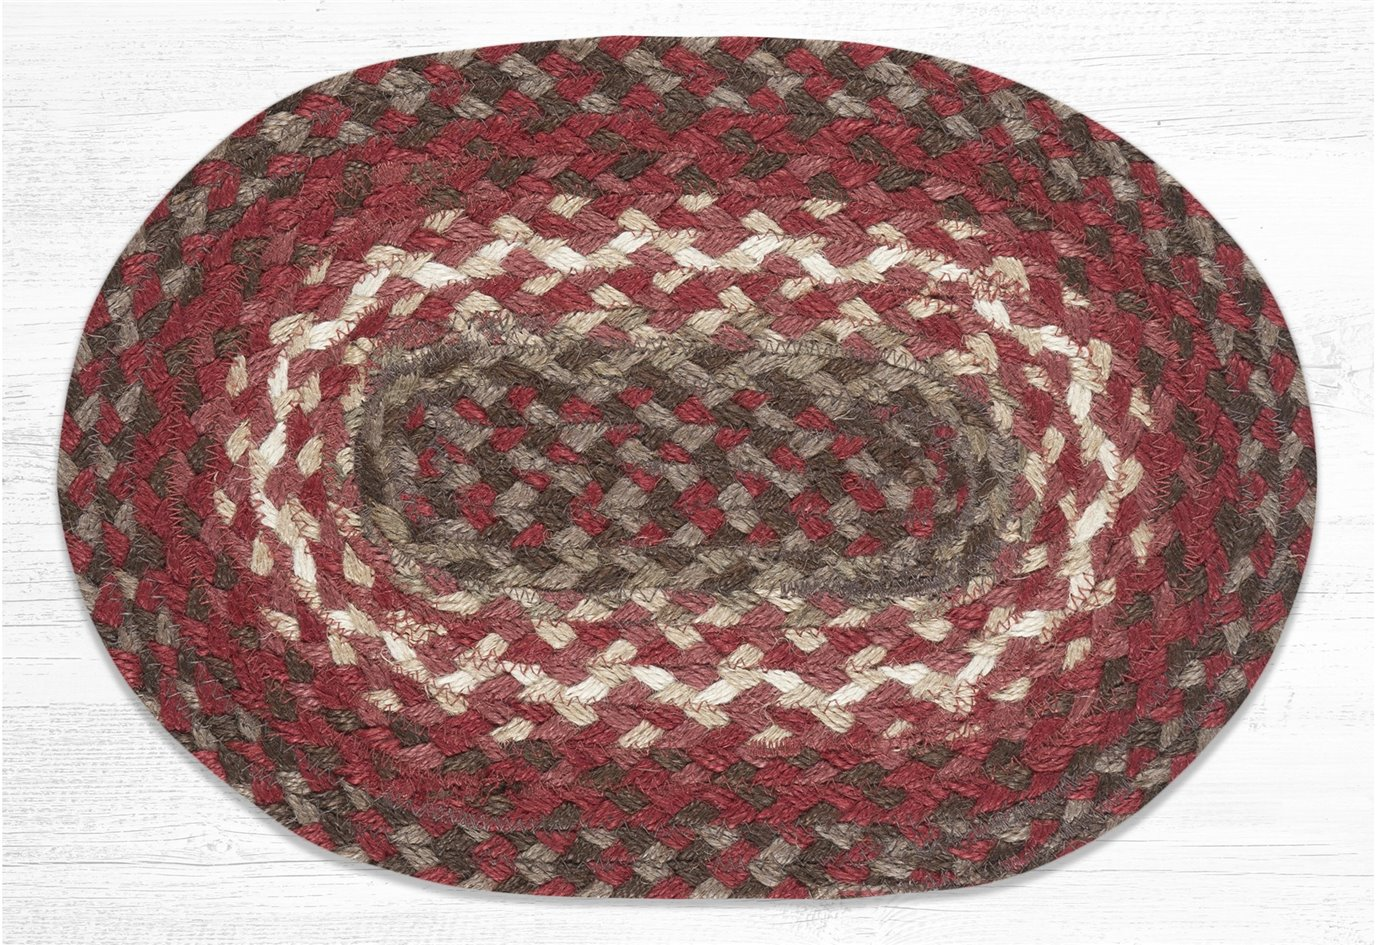 """Taupe/Chestnut/Chili Pepper Oval Braided Swatch 10""""x15"""""""